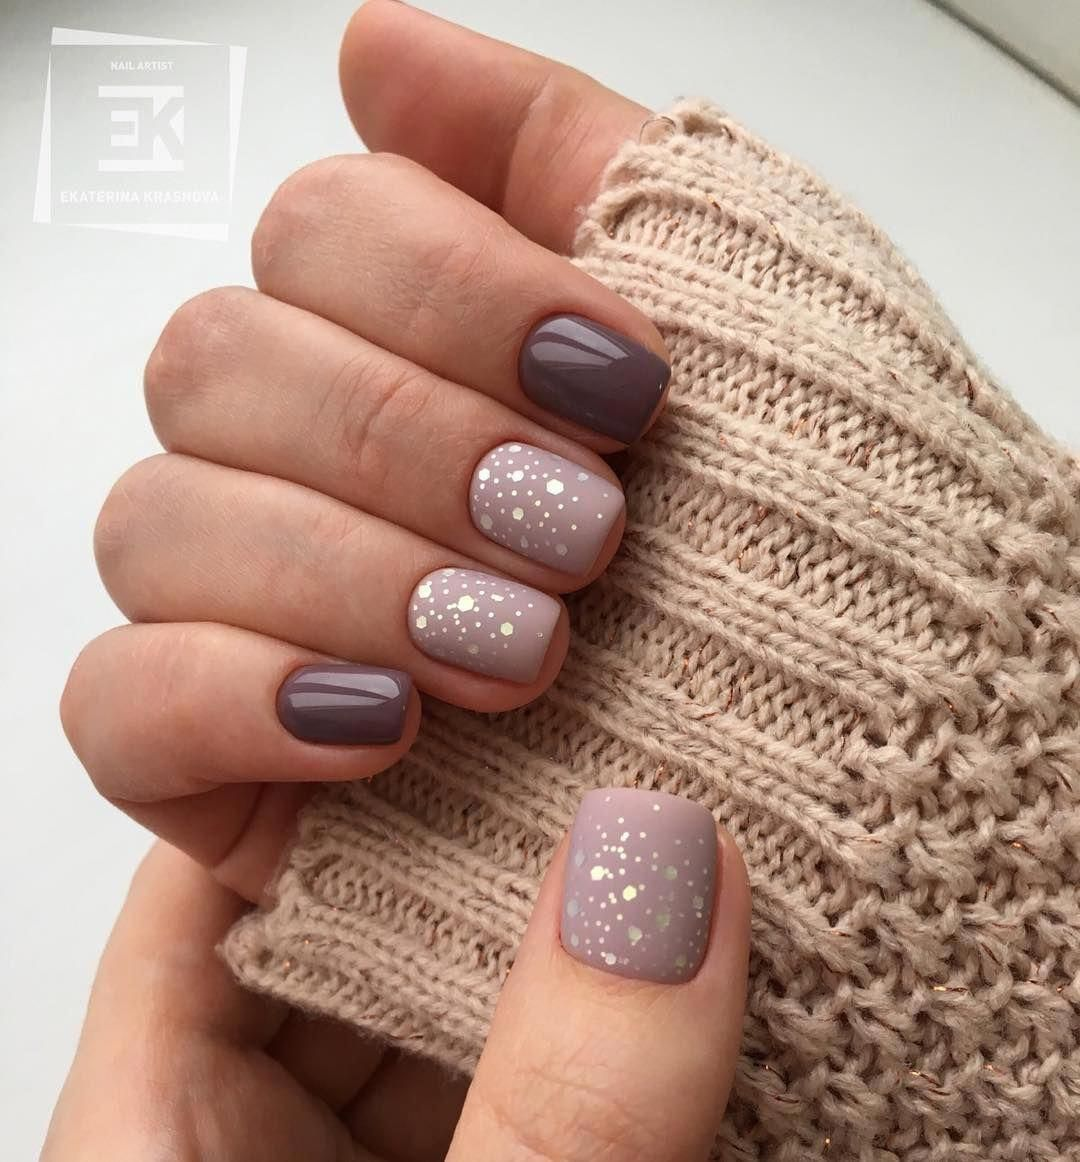 16 Stunning Nail Art Trend Ideas For 2020 Short Square Nails